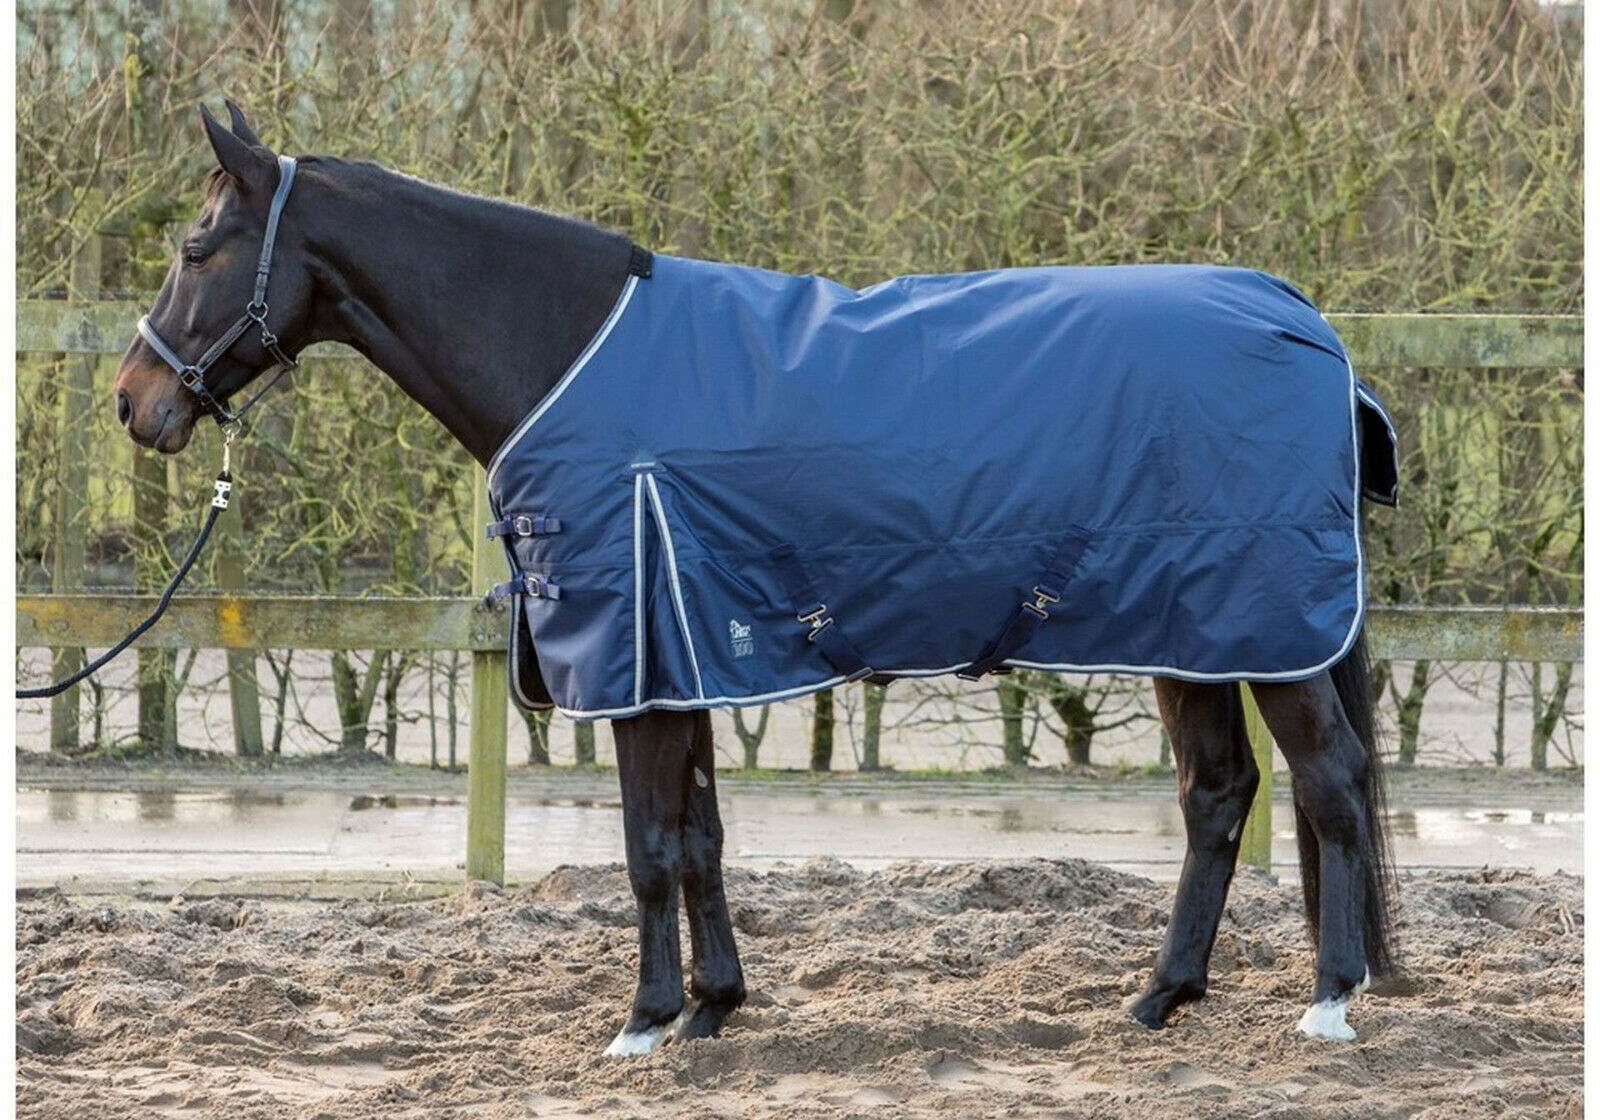 Harry's Horse outdoordecke 100g relleno T C-alimentación animal 600d poliéster impermeable